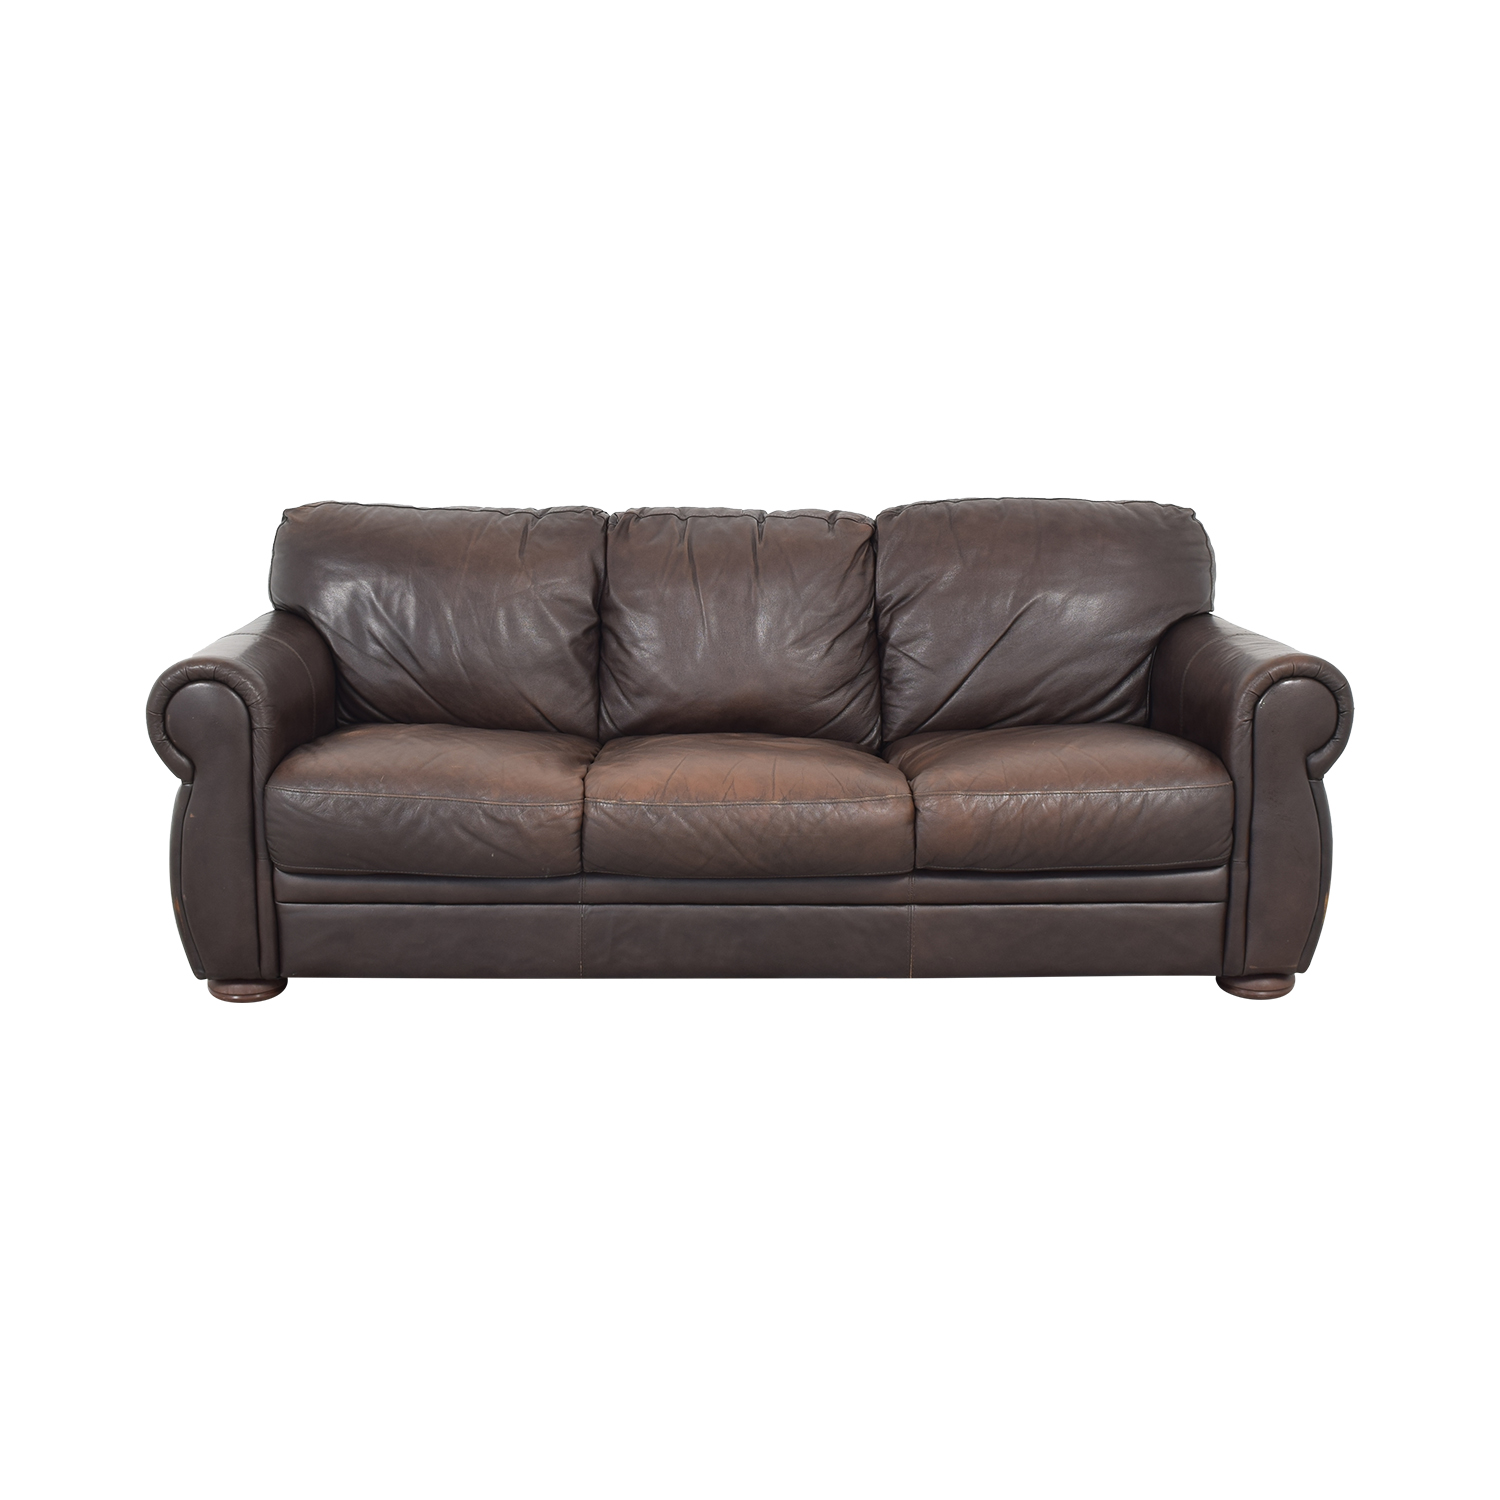 shop Chateau D'ax Marsala Leather Sofa Chateau d'Ax Classic Sofas